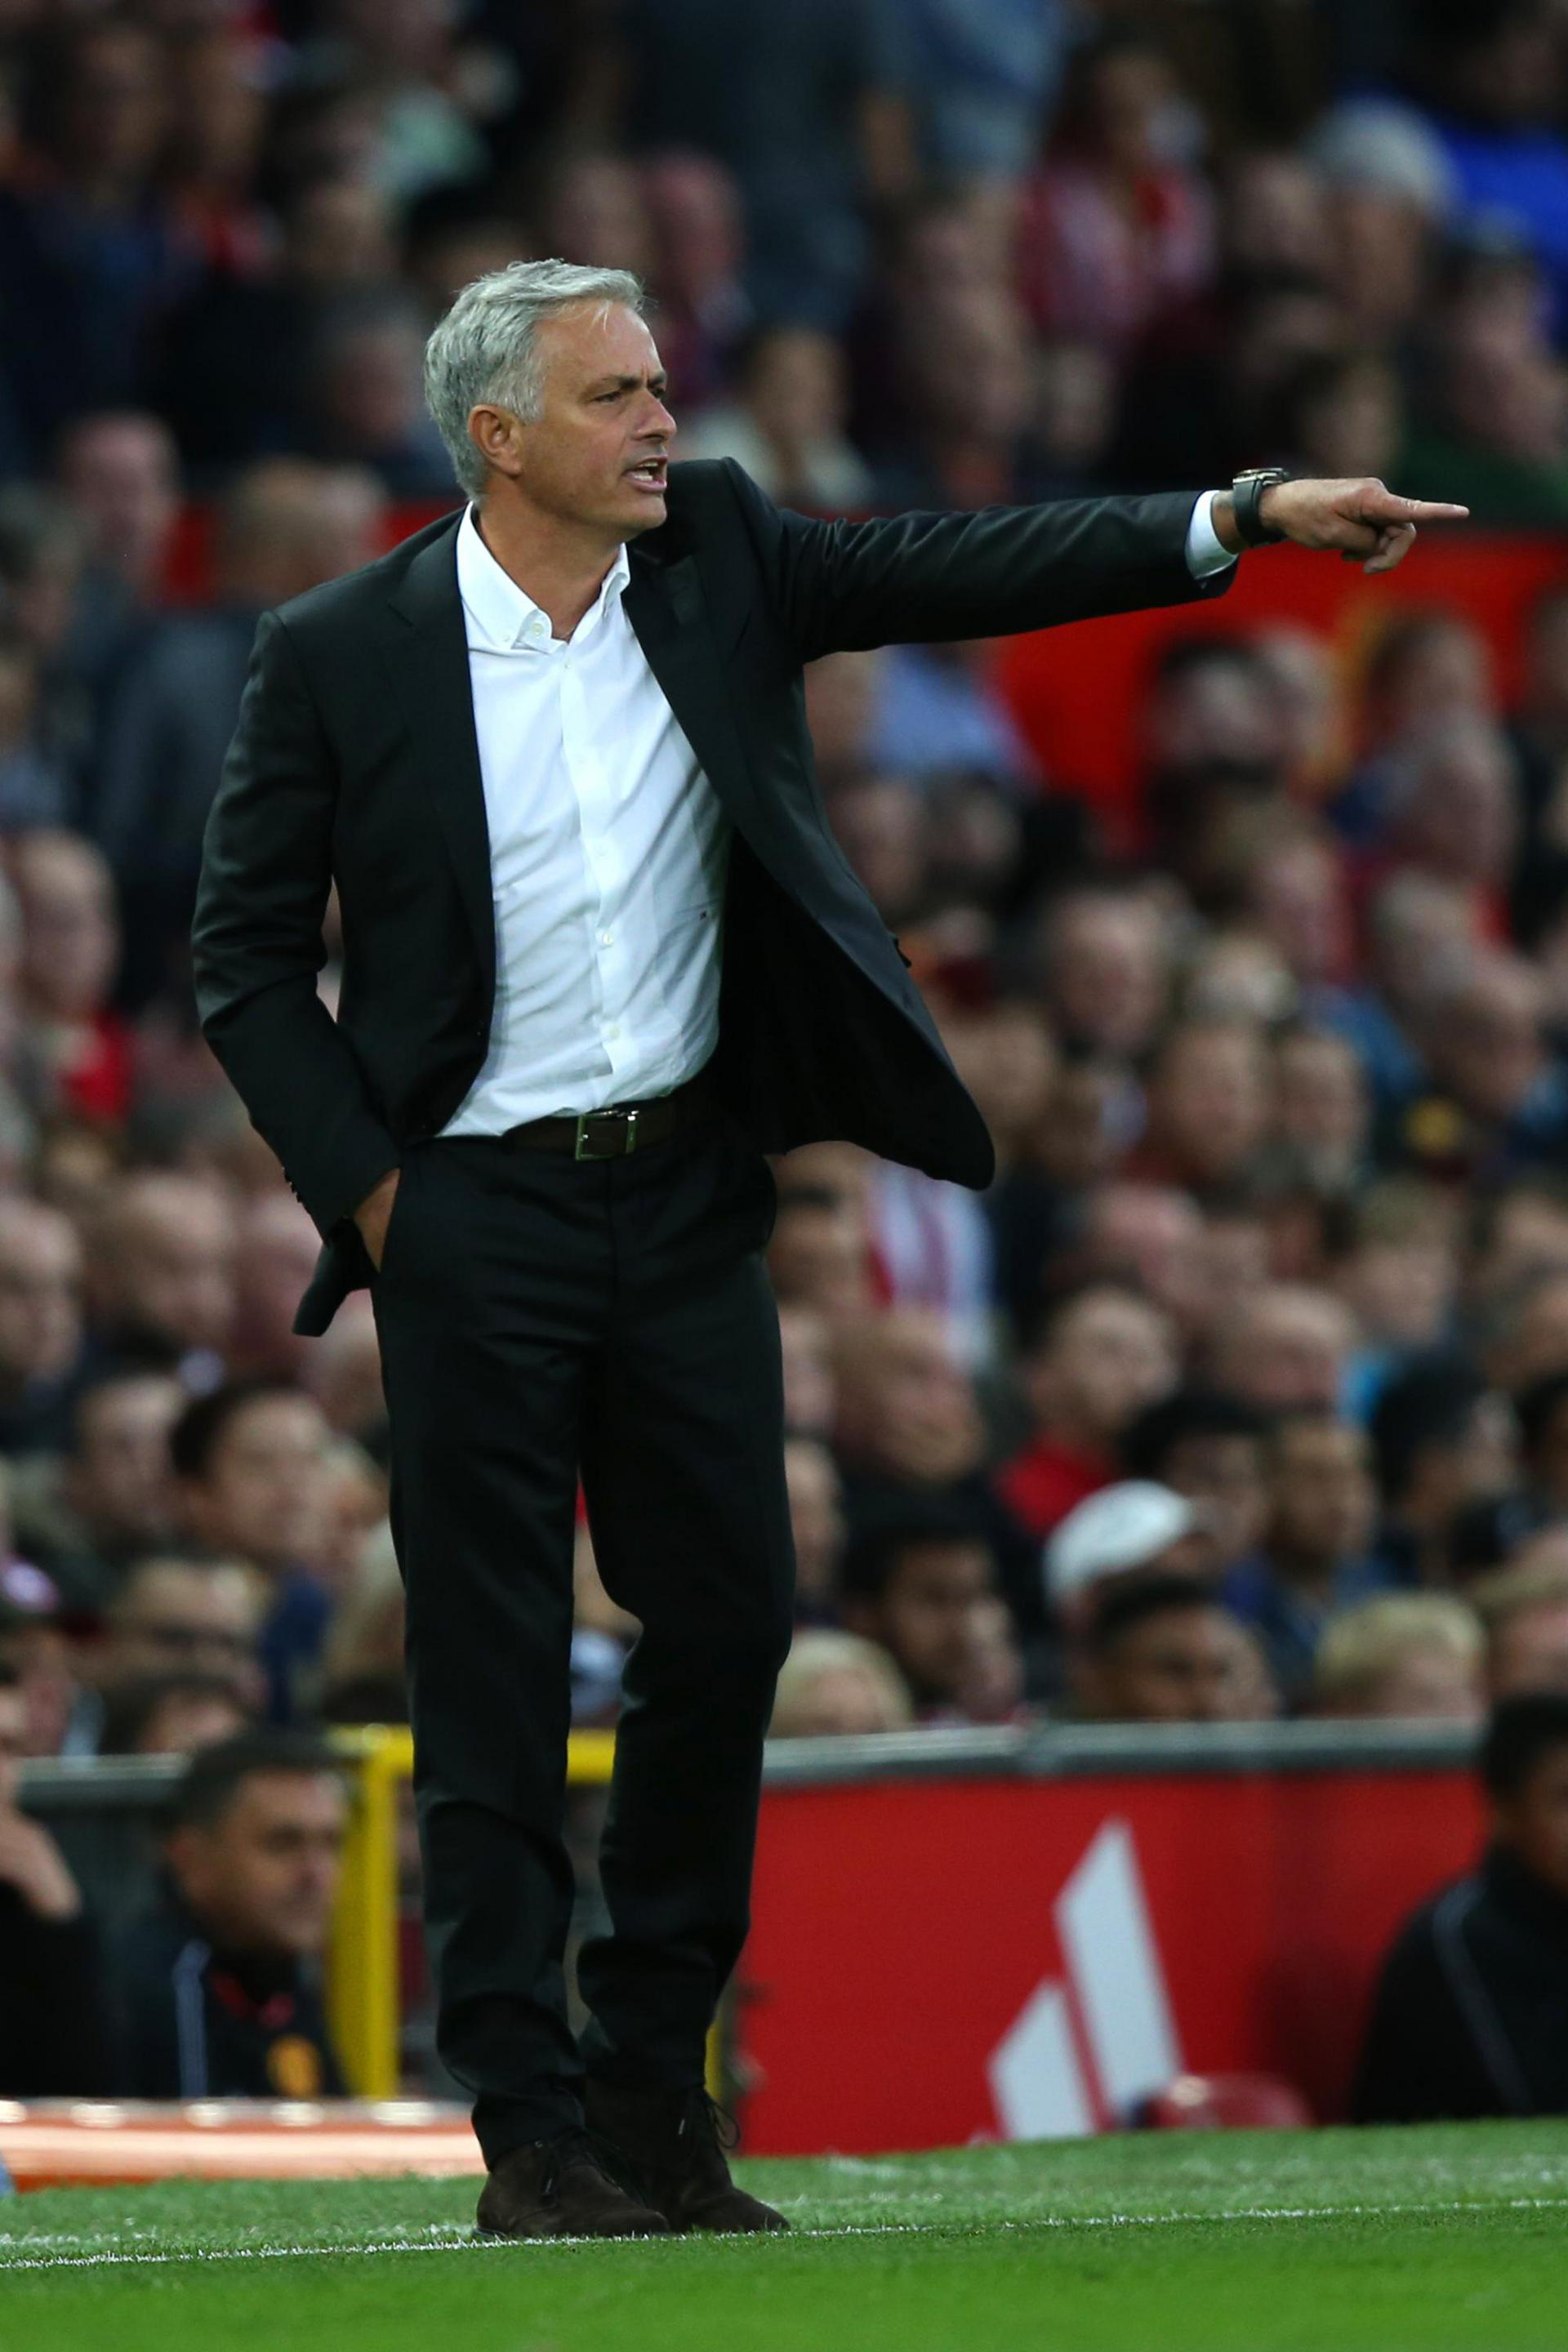 Jose Mourinho shouts instructions from the technical area at Old Trafford